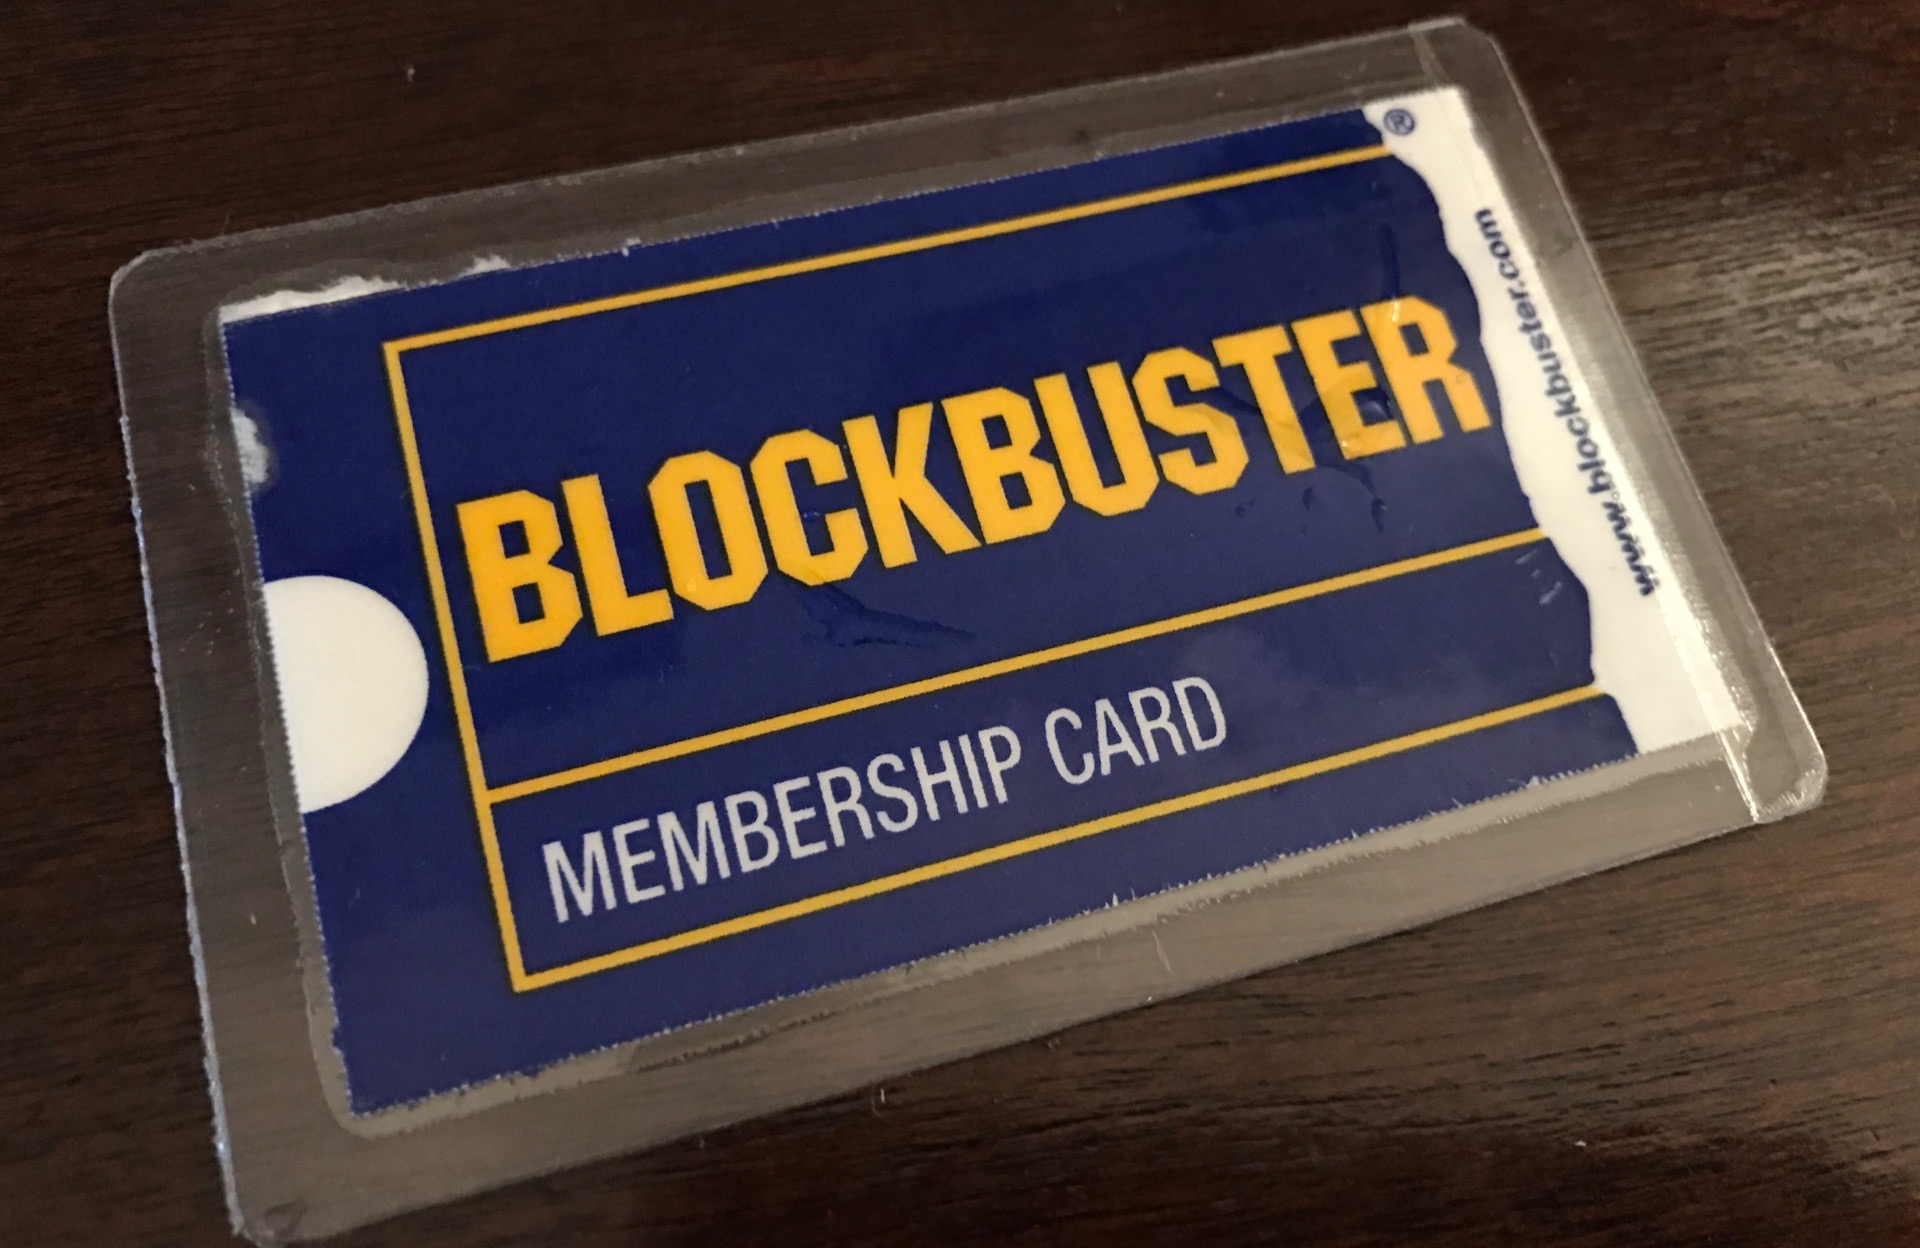 The Blockbuster Membership Card.